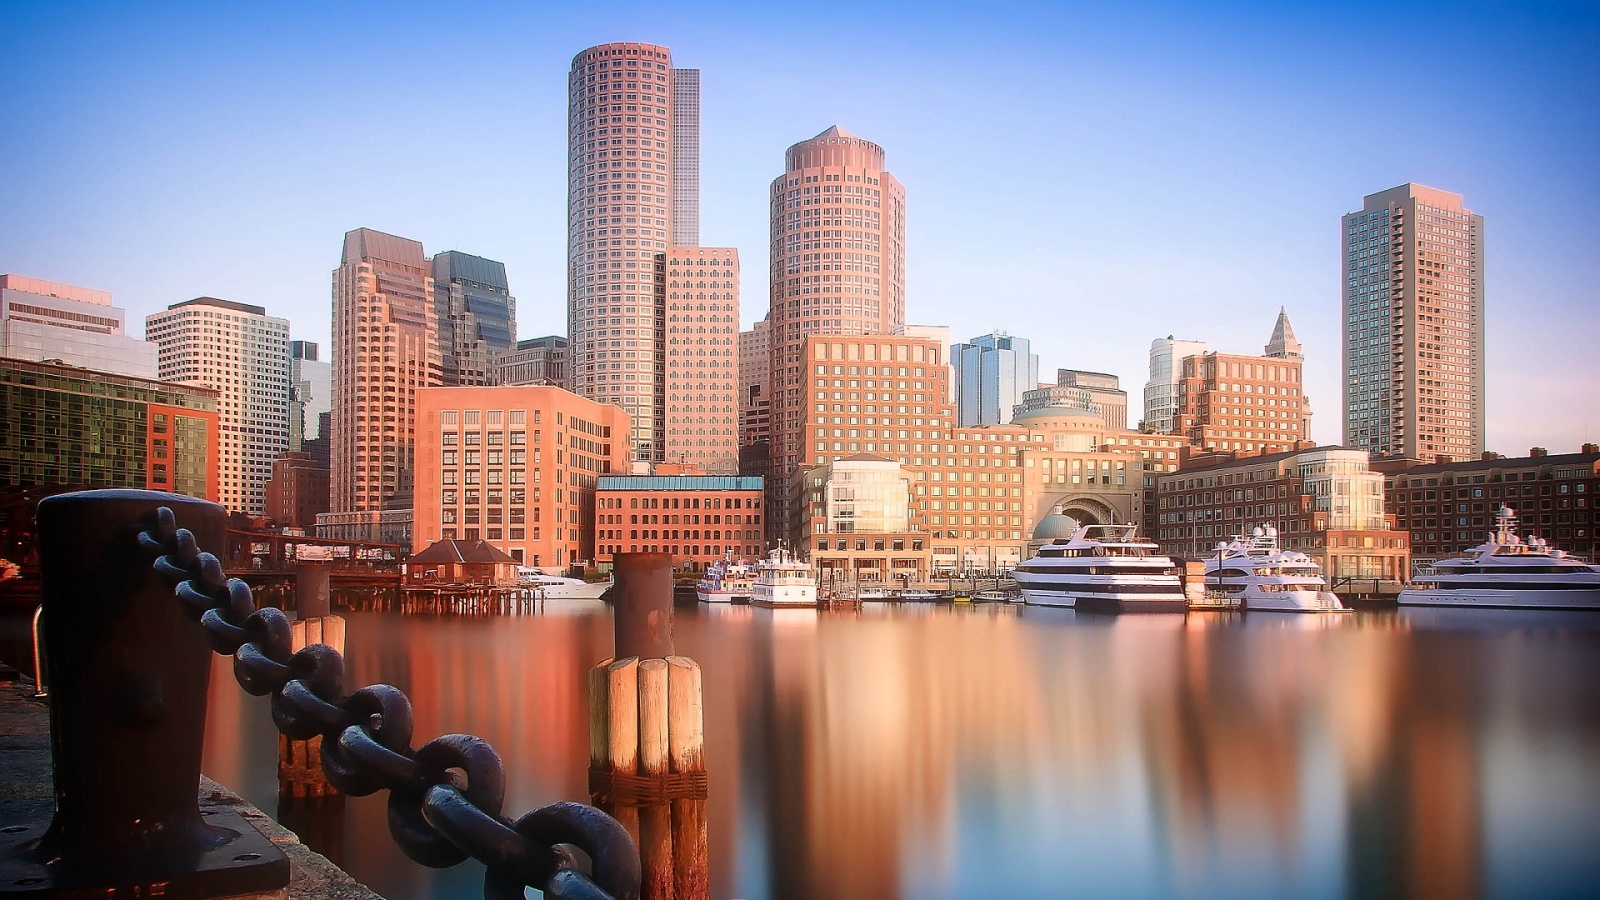 Dec 04, · Boston's source for the latest breaking news, sports scores, traffic updates, weather, culture, events and more. Check out dufucomekiguki.ga